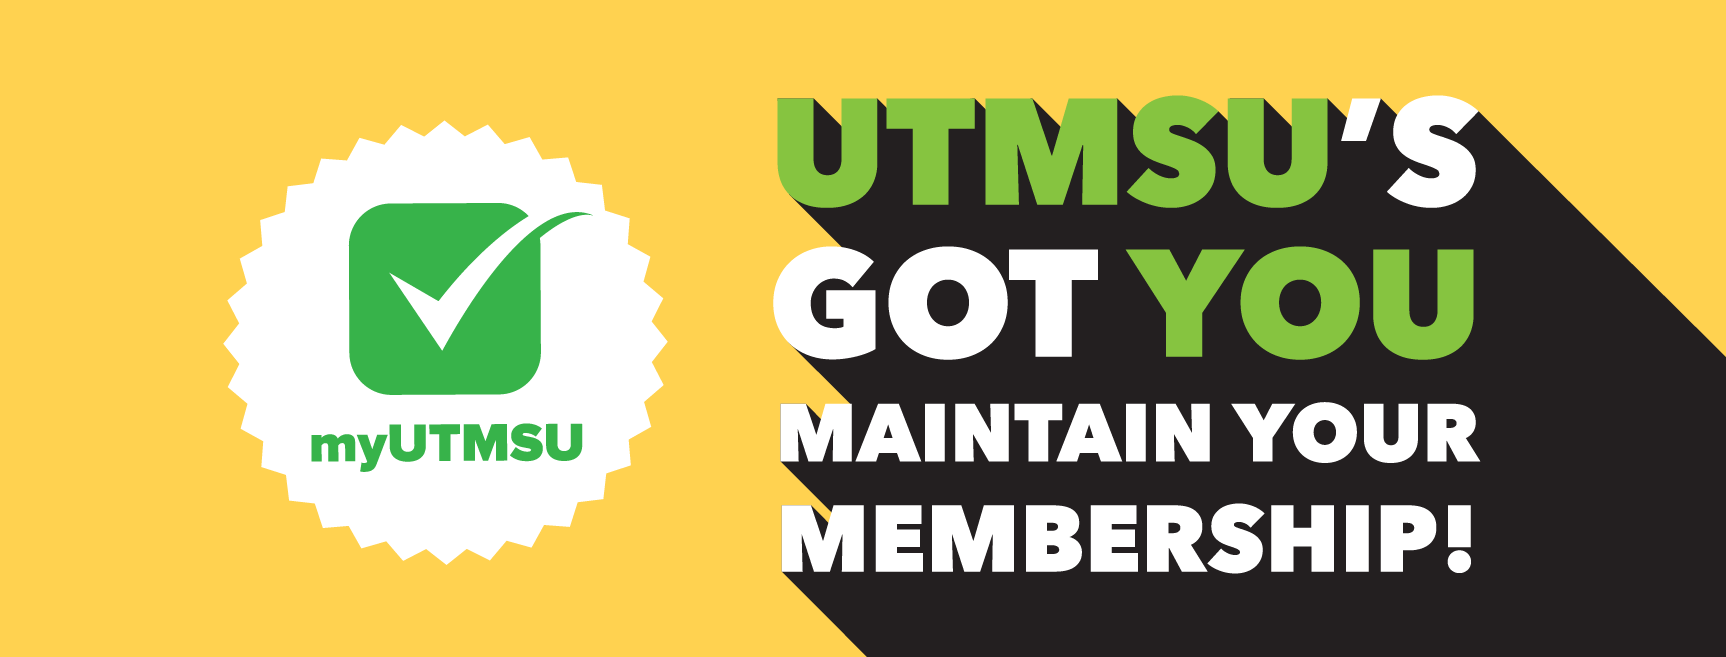 maintainyourmembership-PAGE-banner-01